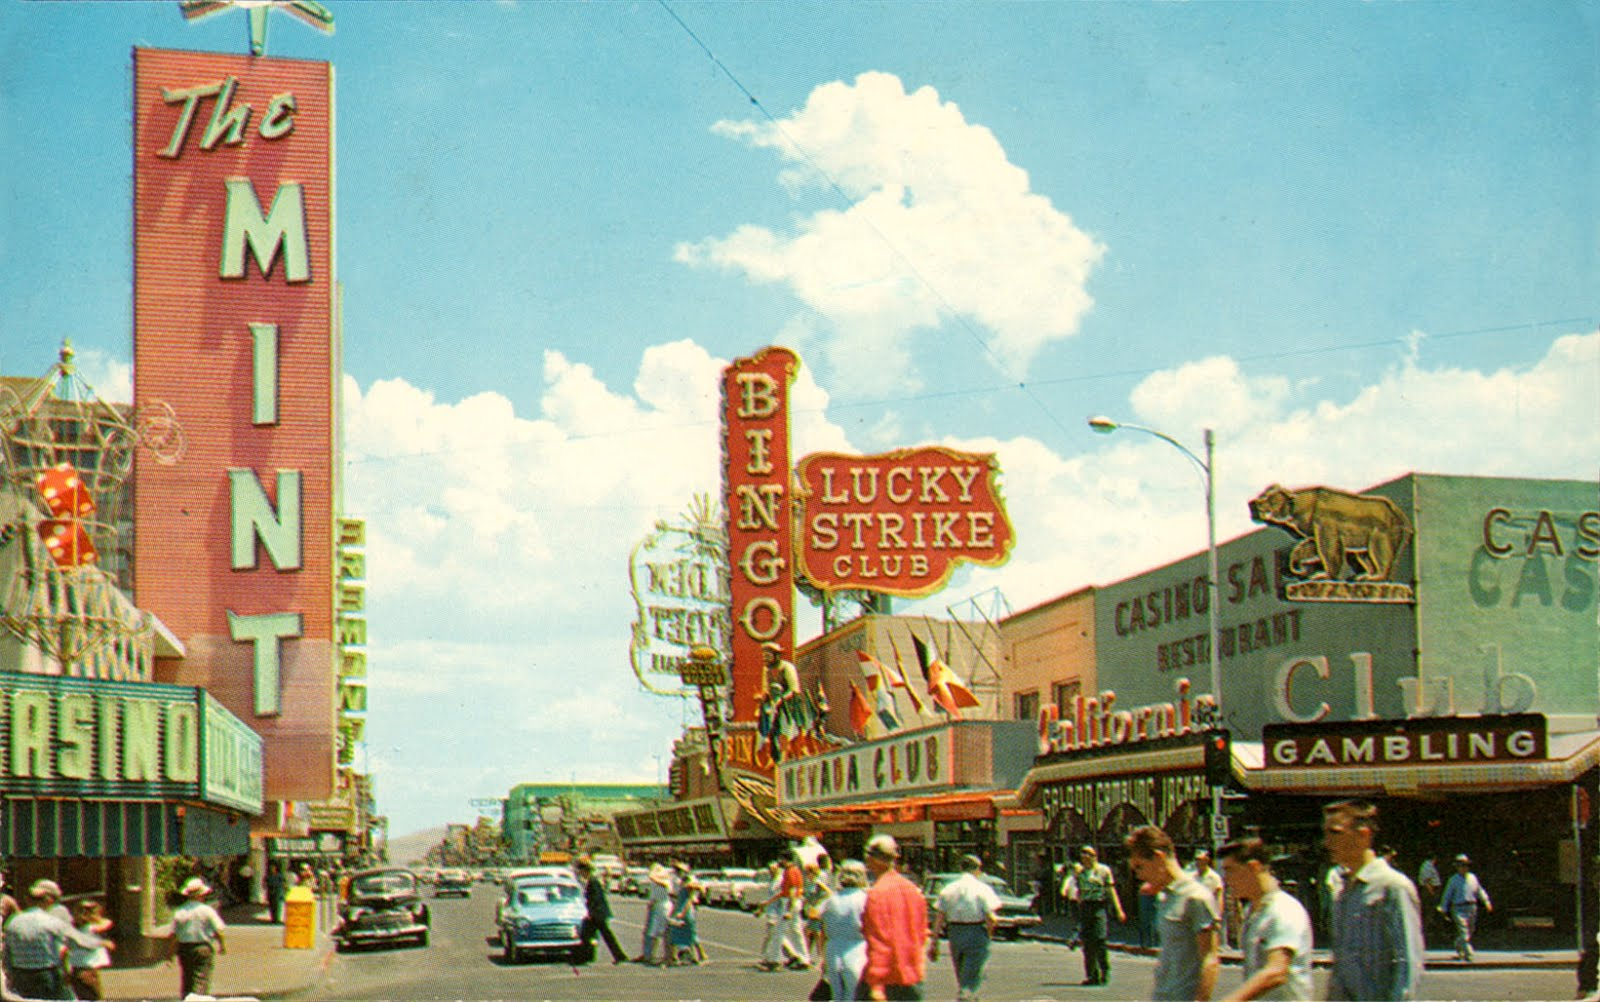 Vintage Photos of Las Vegas in the 1950s and 1960s (1)